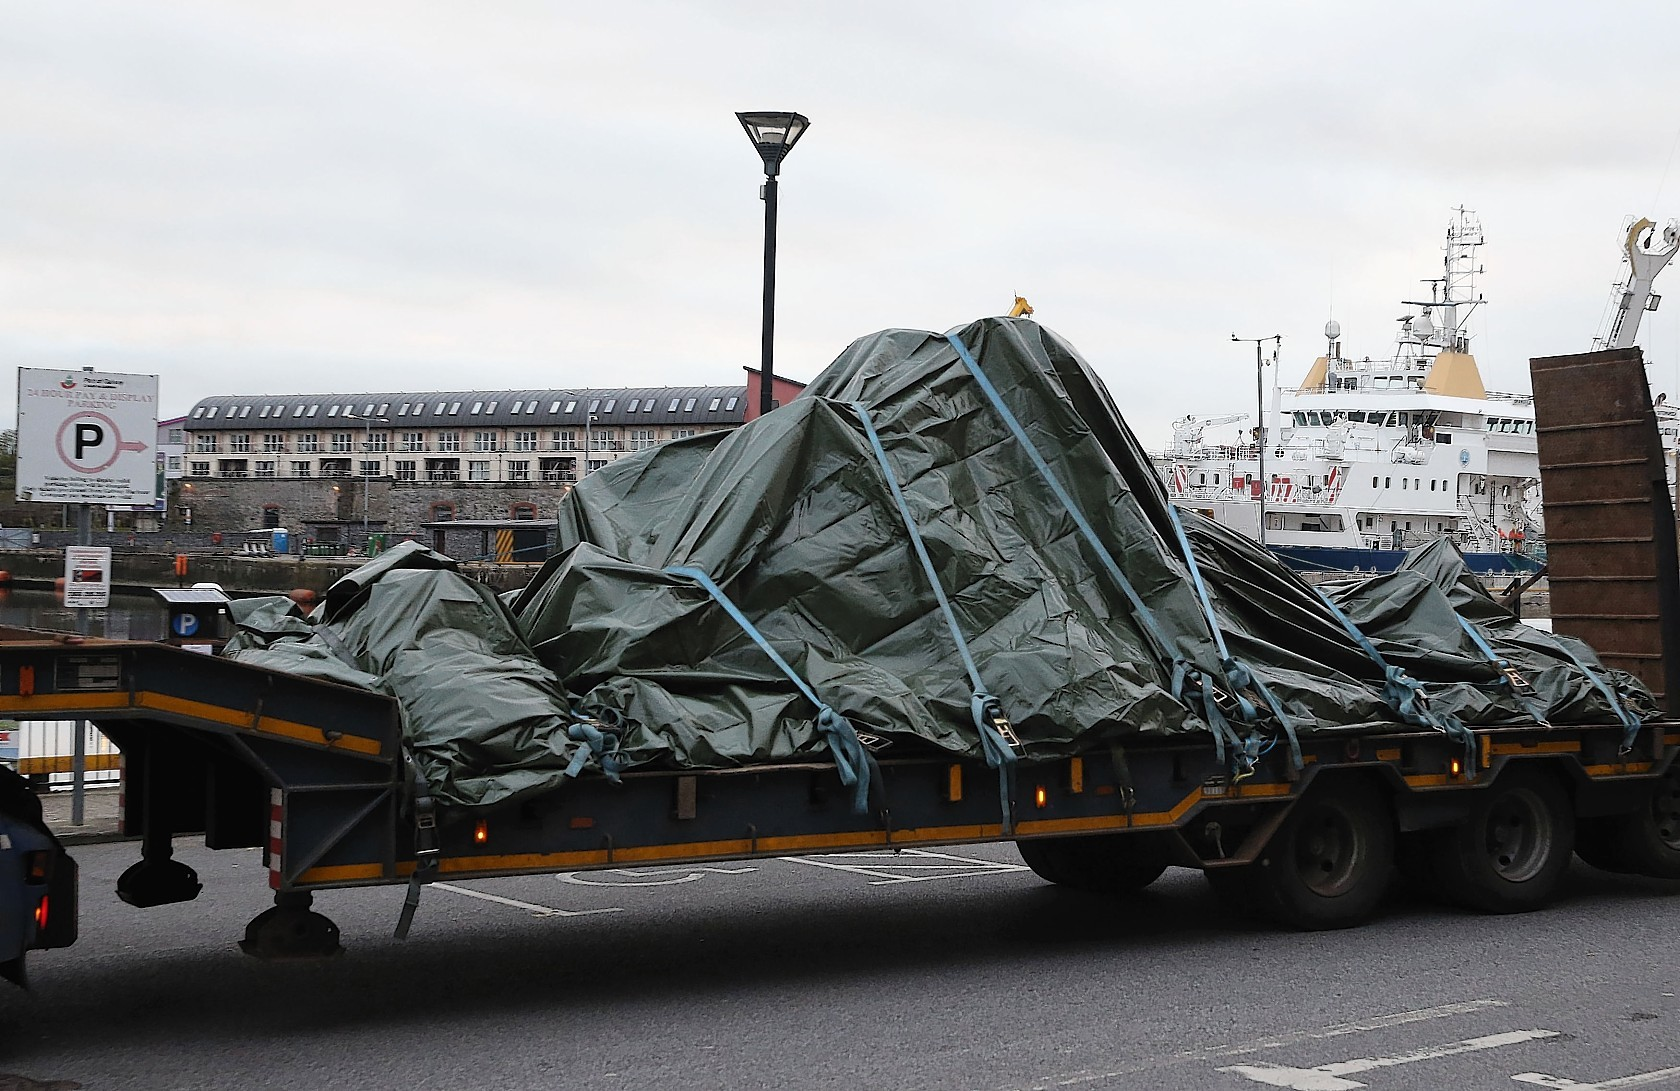 The wreckage of the Irish Coast Guard helicopter, callsign Rescue 116, which crashed off the west coast of Ireland on March 14, leaves Galway harbour on a flat bed truck after the aircraft was recovered from the seabed near Blackrock. Photo credit  Brian Lawless/PA Wire